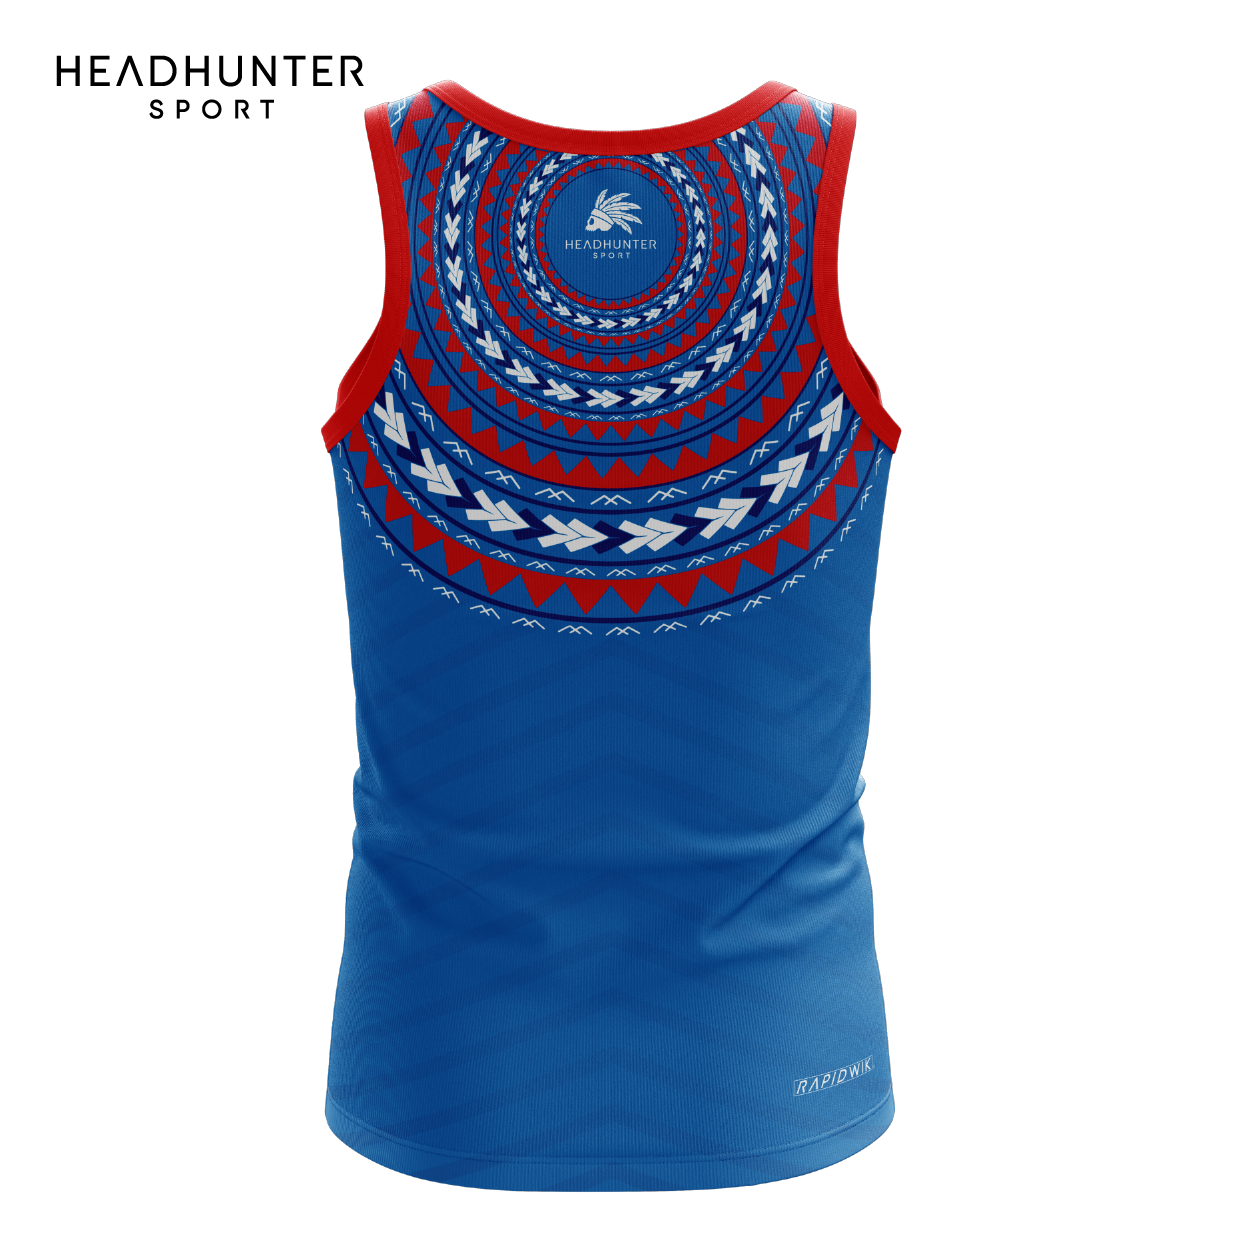 HSBC RUGBY 7S SERIES SINGAPORE 2019 MERCHANDISE SAMOA SINGLET